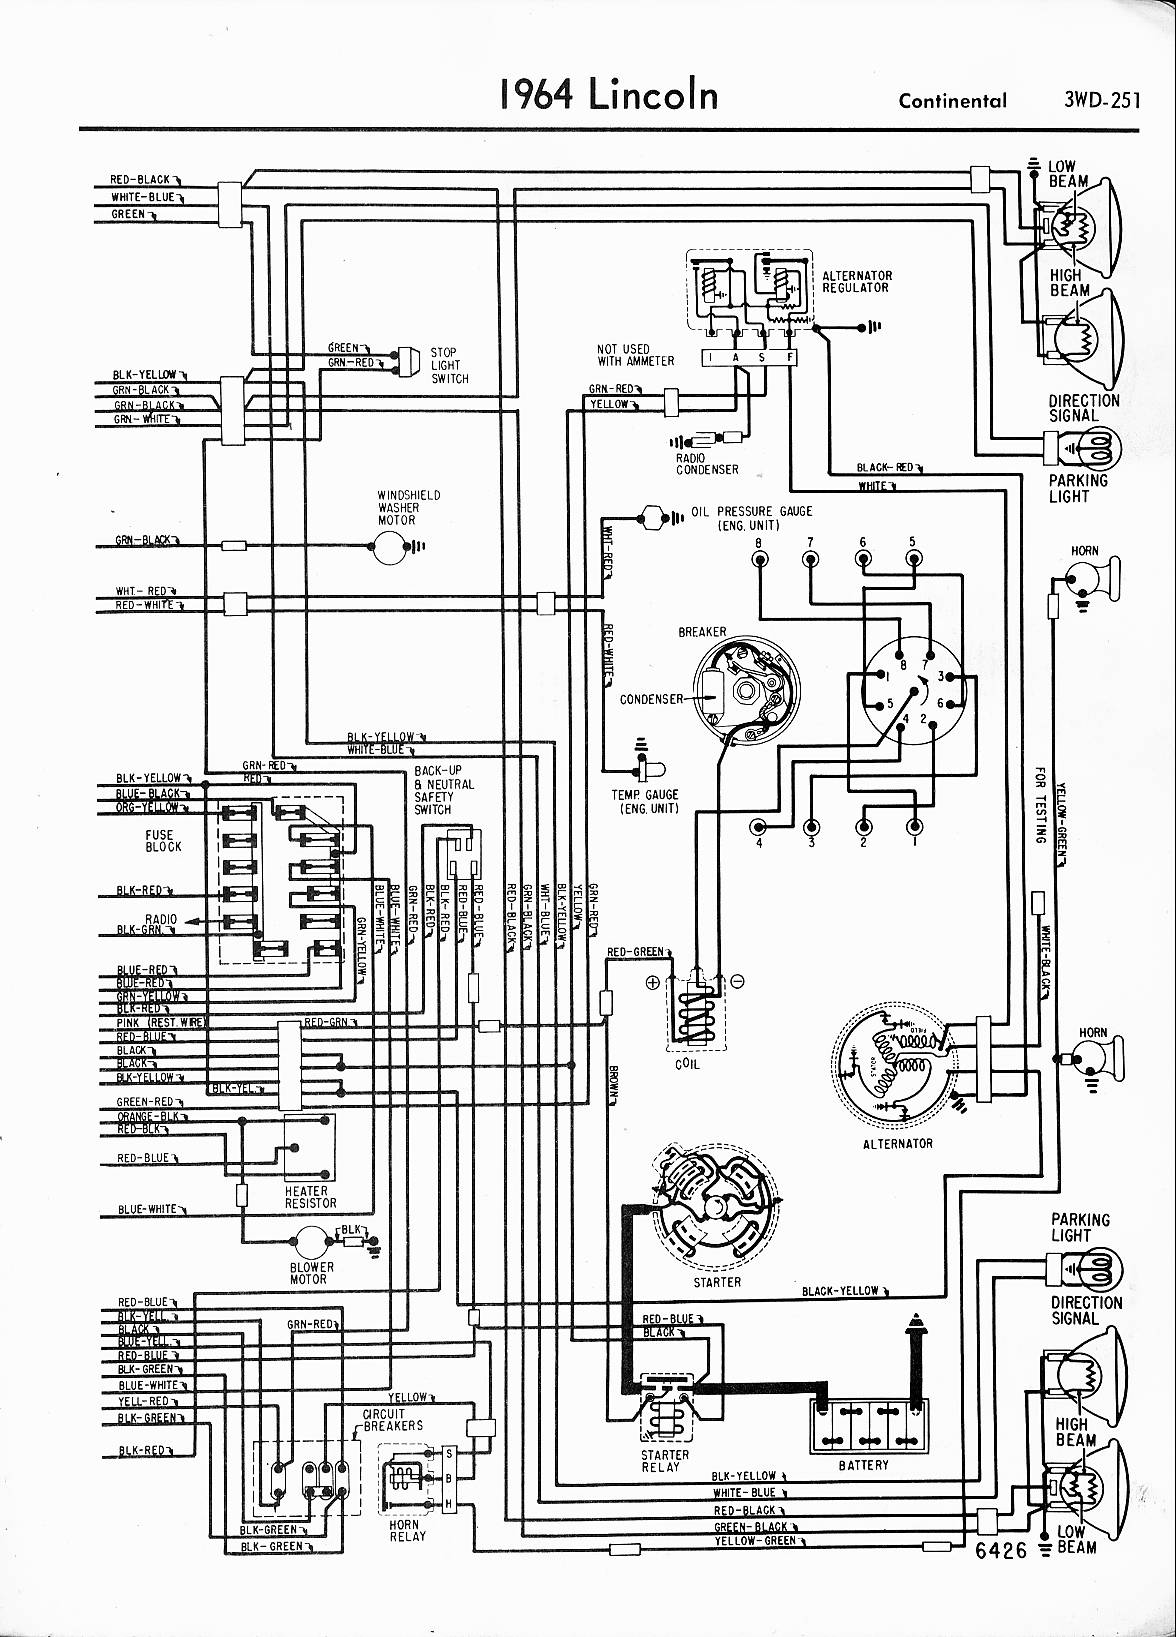 lincoln wiring diagrams 1957 1965 lincoln continental 1964 lincoln right  half